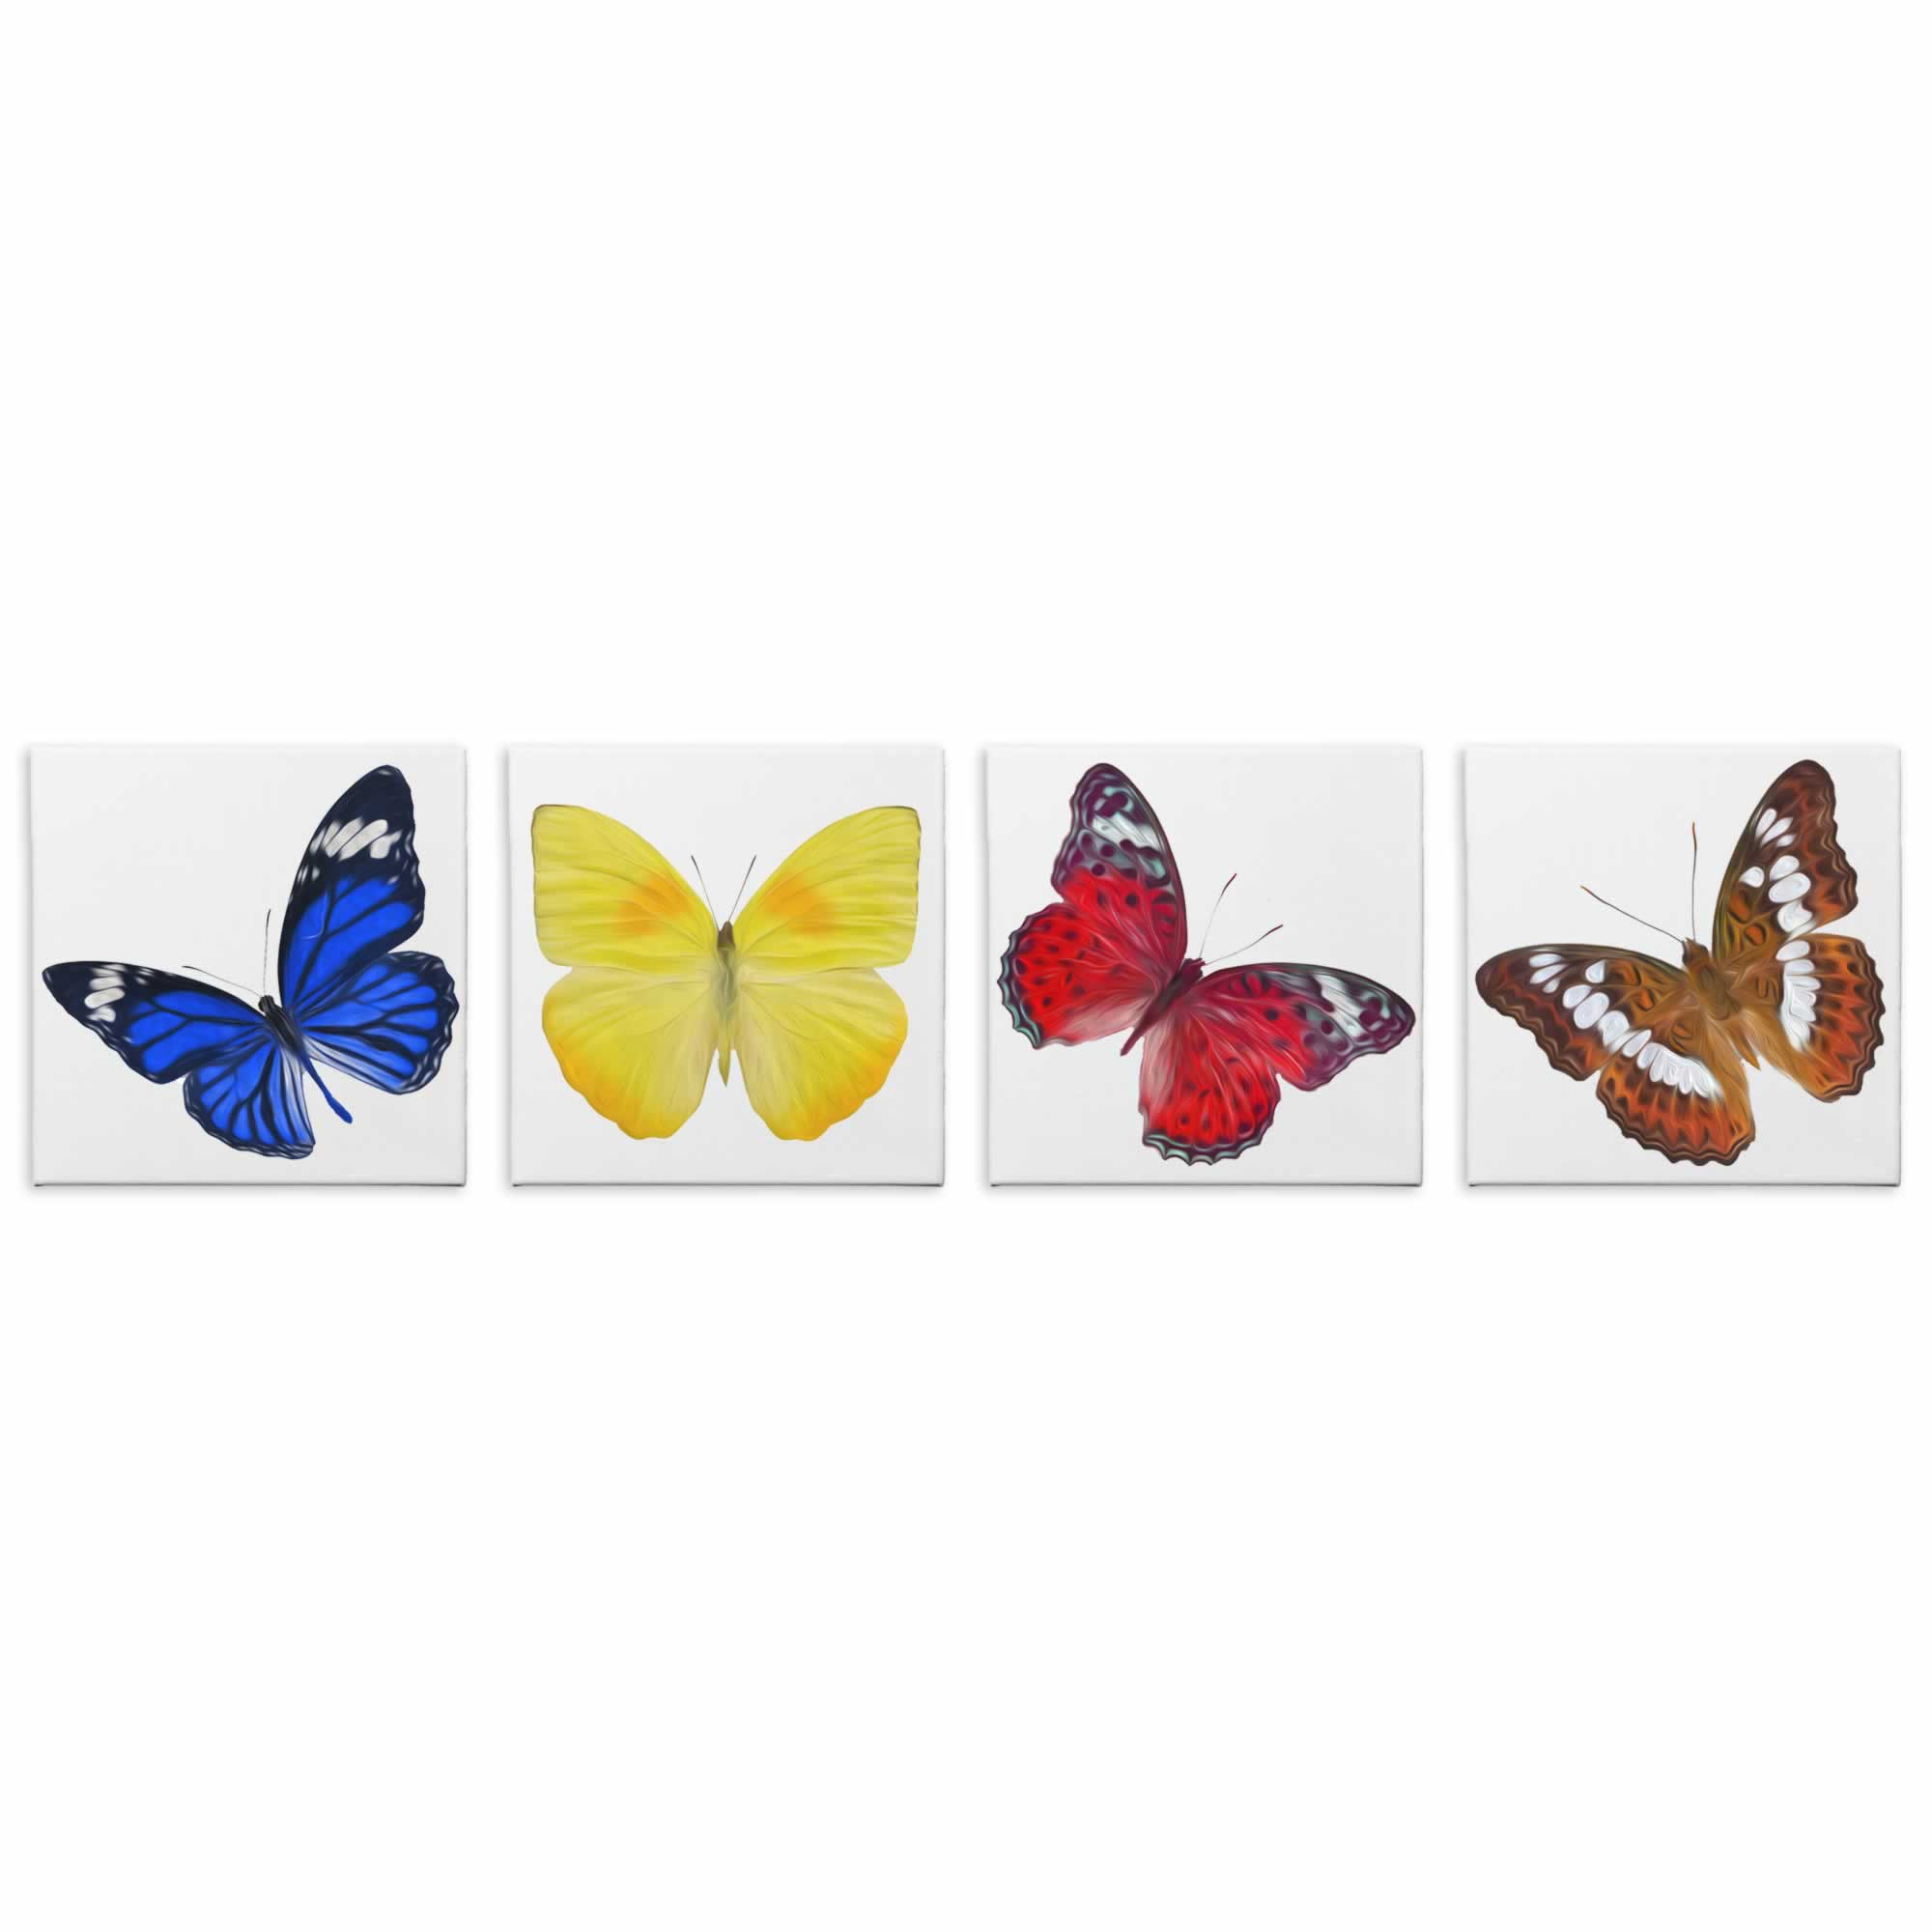 Butterflies - Contemporary giclee Painting Print on Canvas